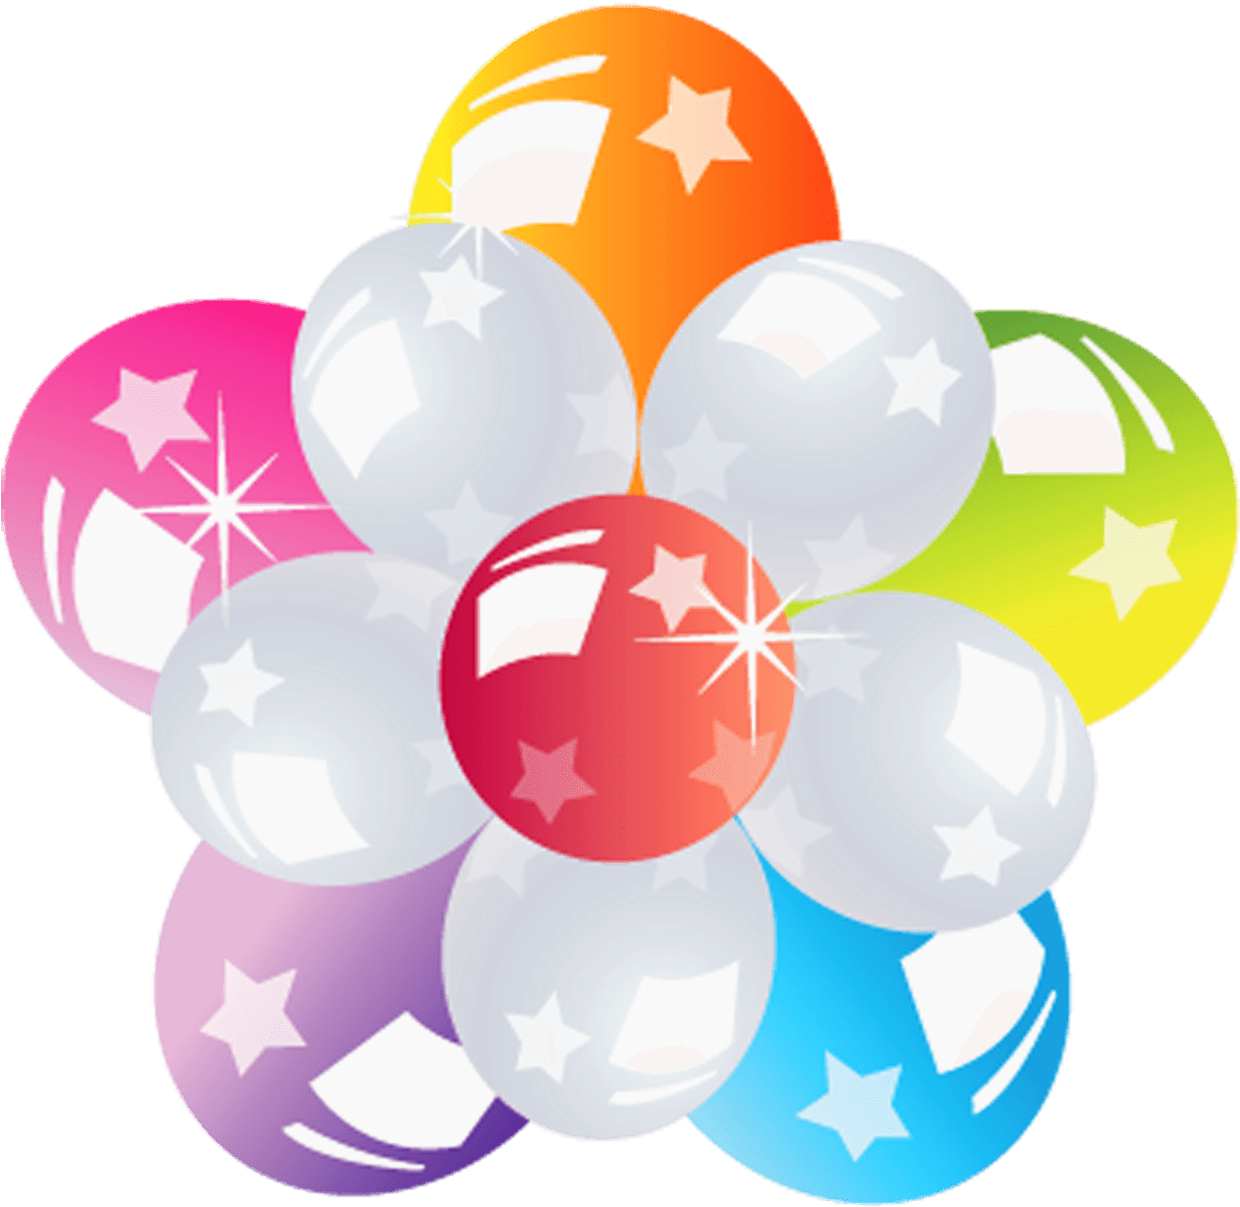 Flower Of Balloons transparent PNG.